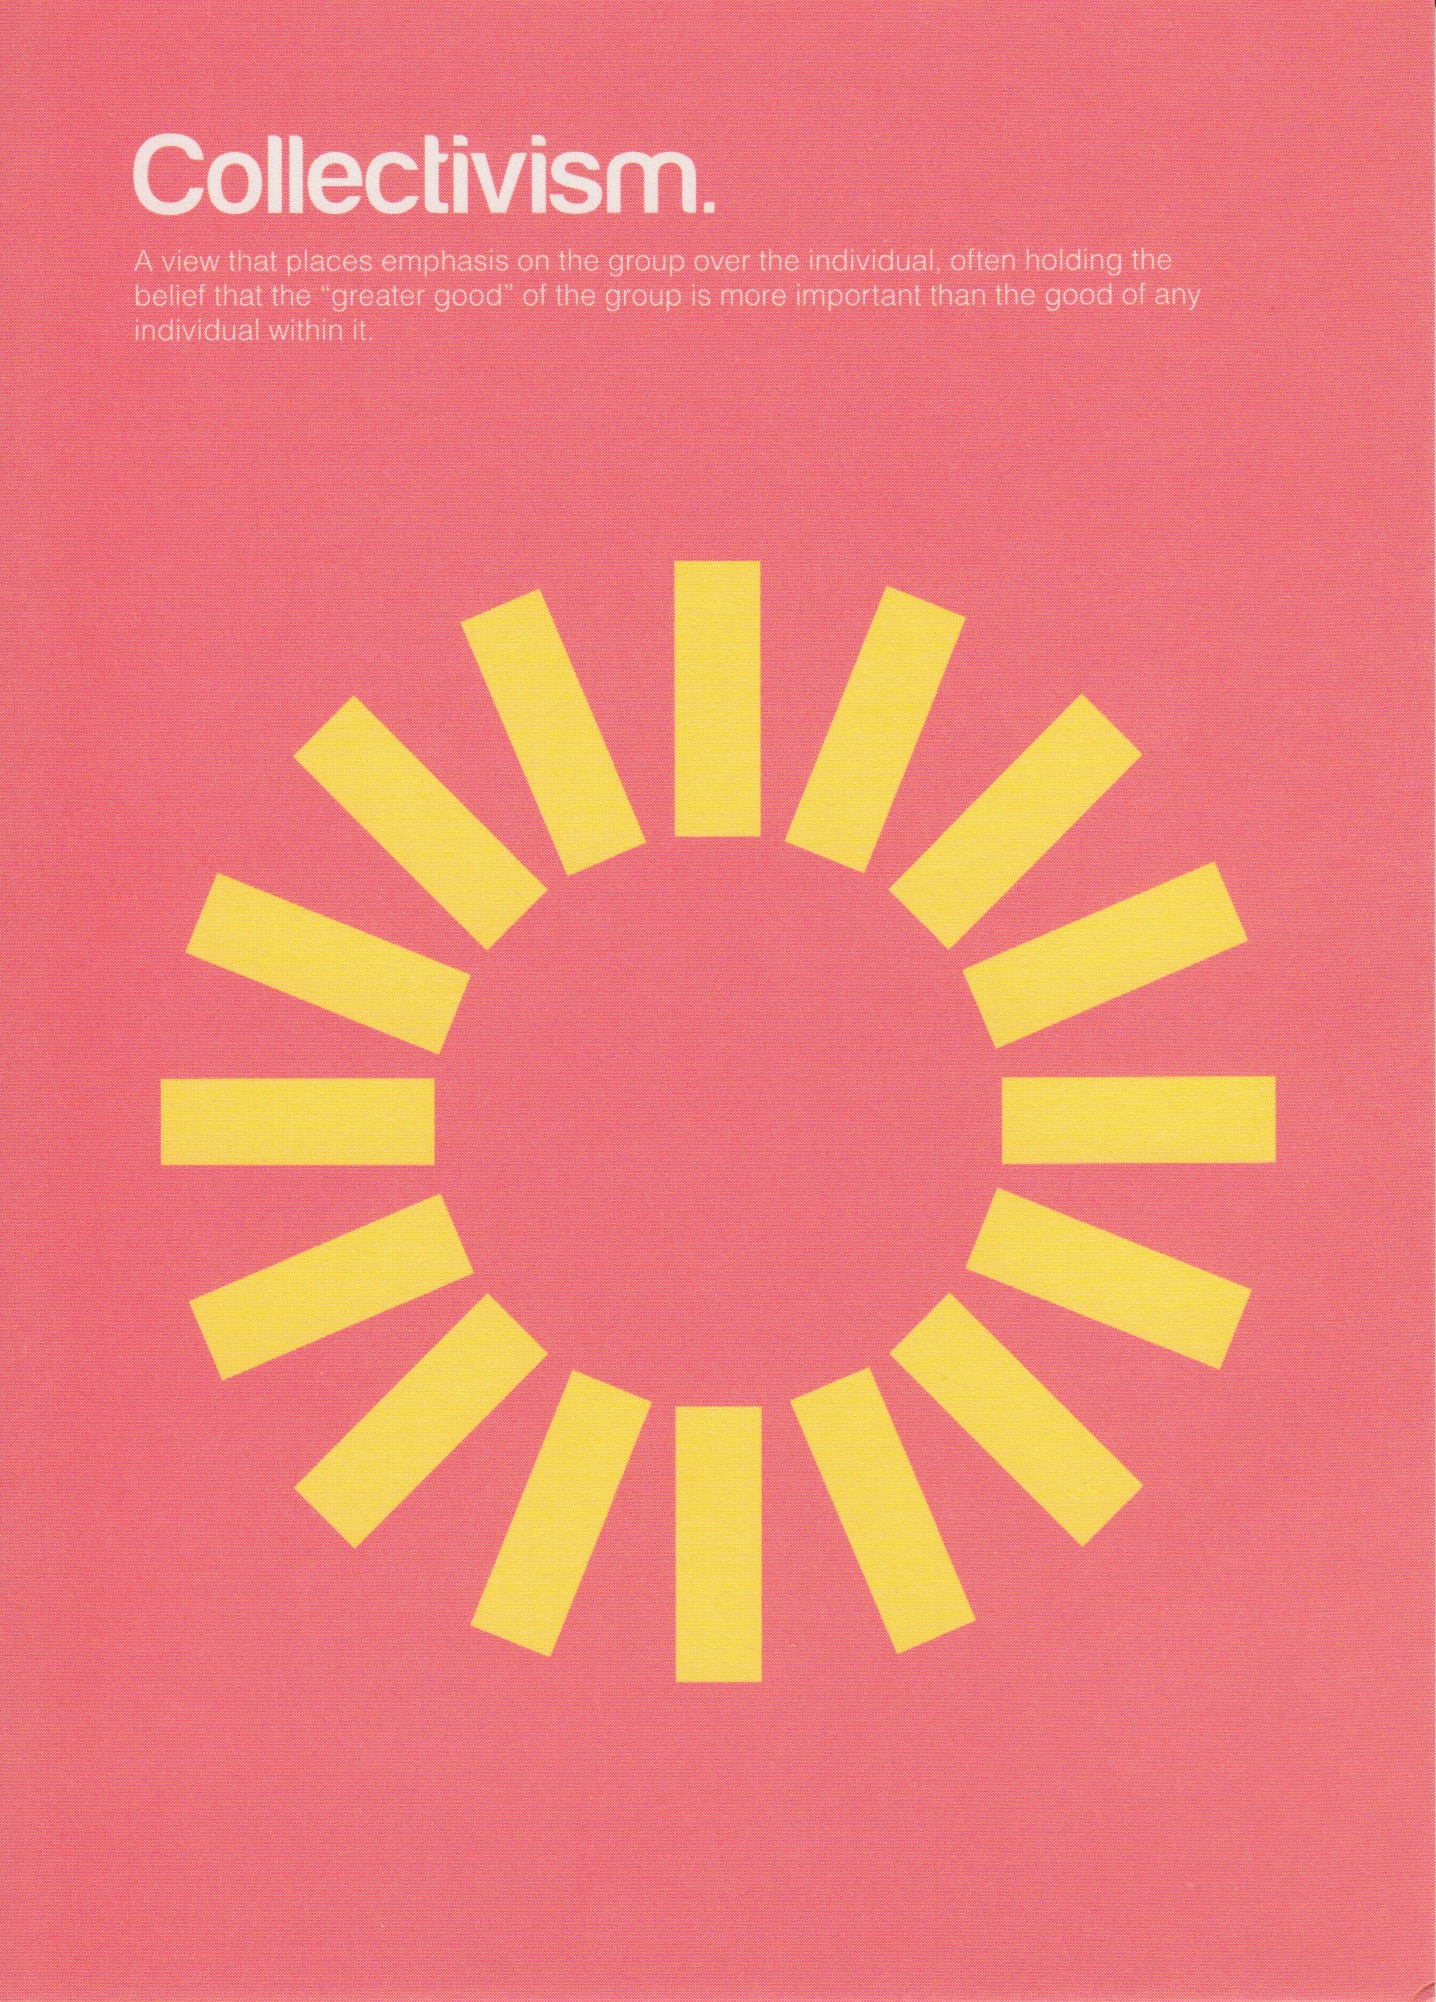 philographics-collectivism